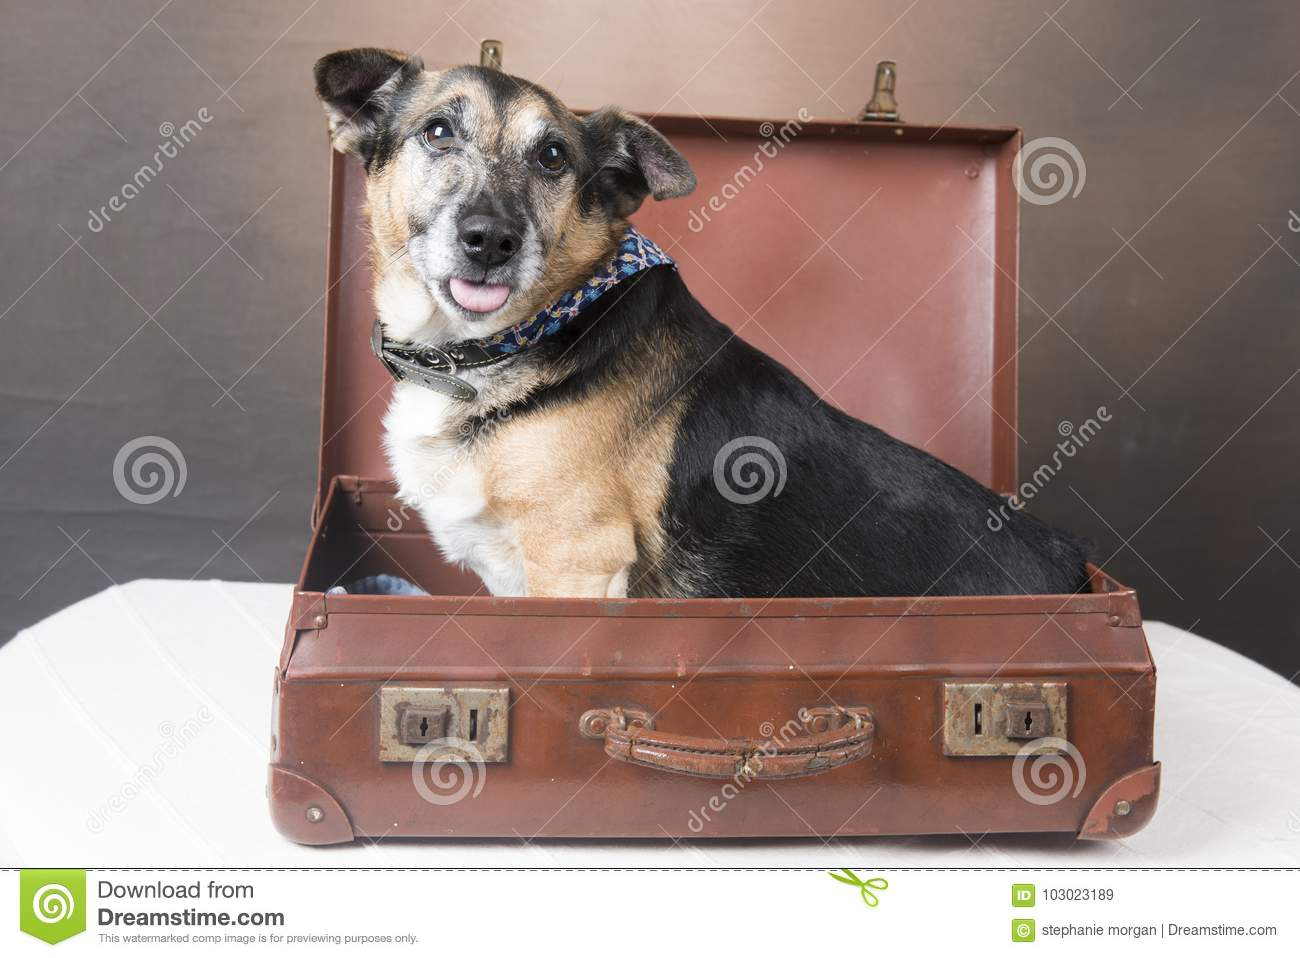 Cute Corgi dog sitting inside a suitcase with his tongue out